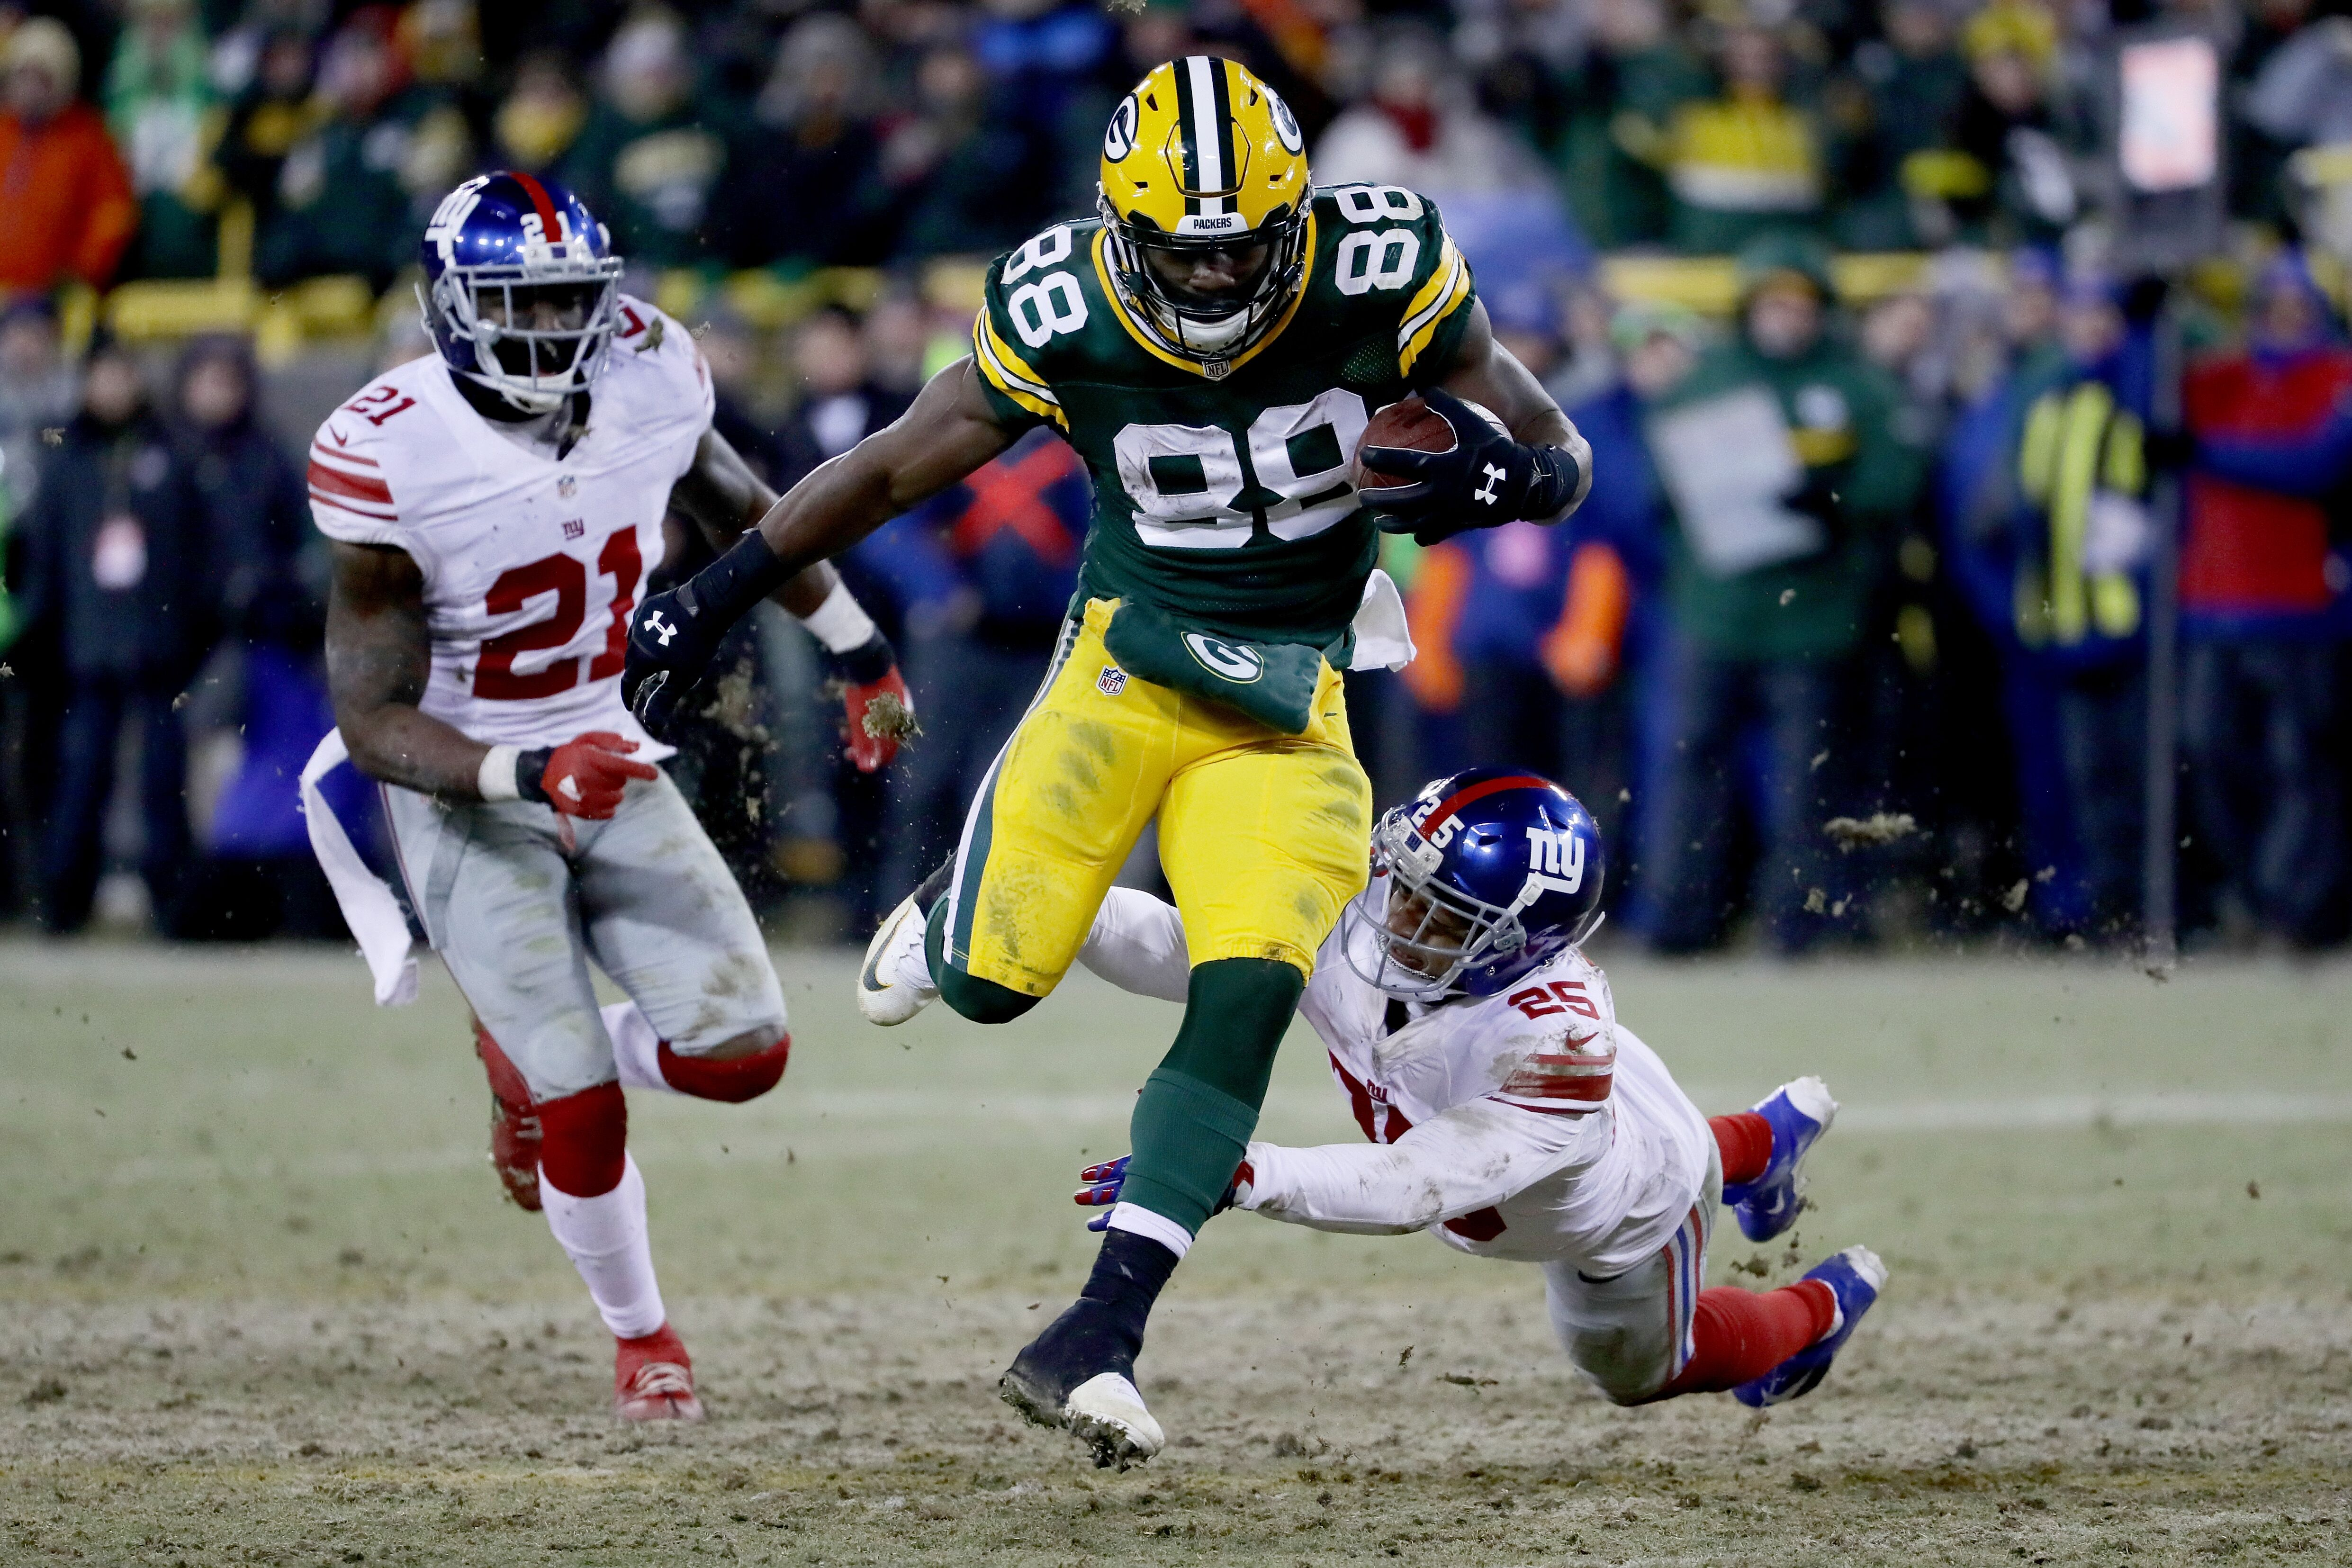 631245762-wild-card-round-new-york-giants-v-green-bay-packers.jpg